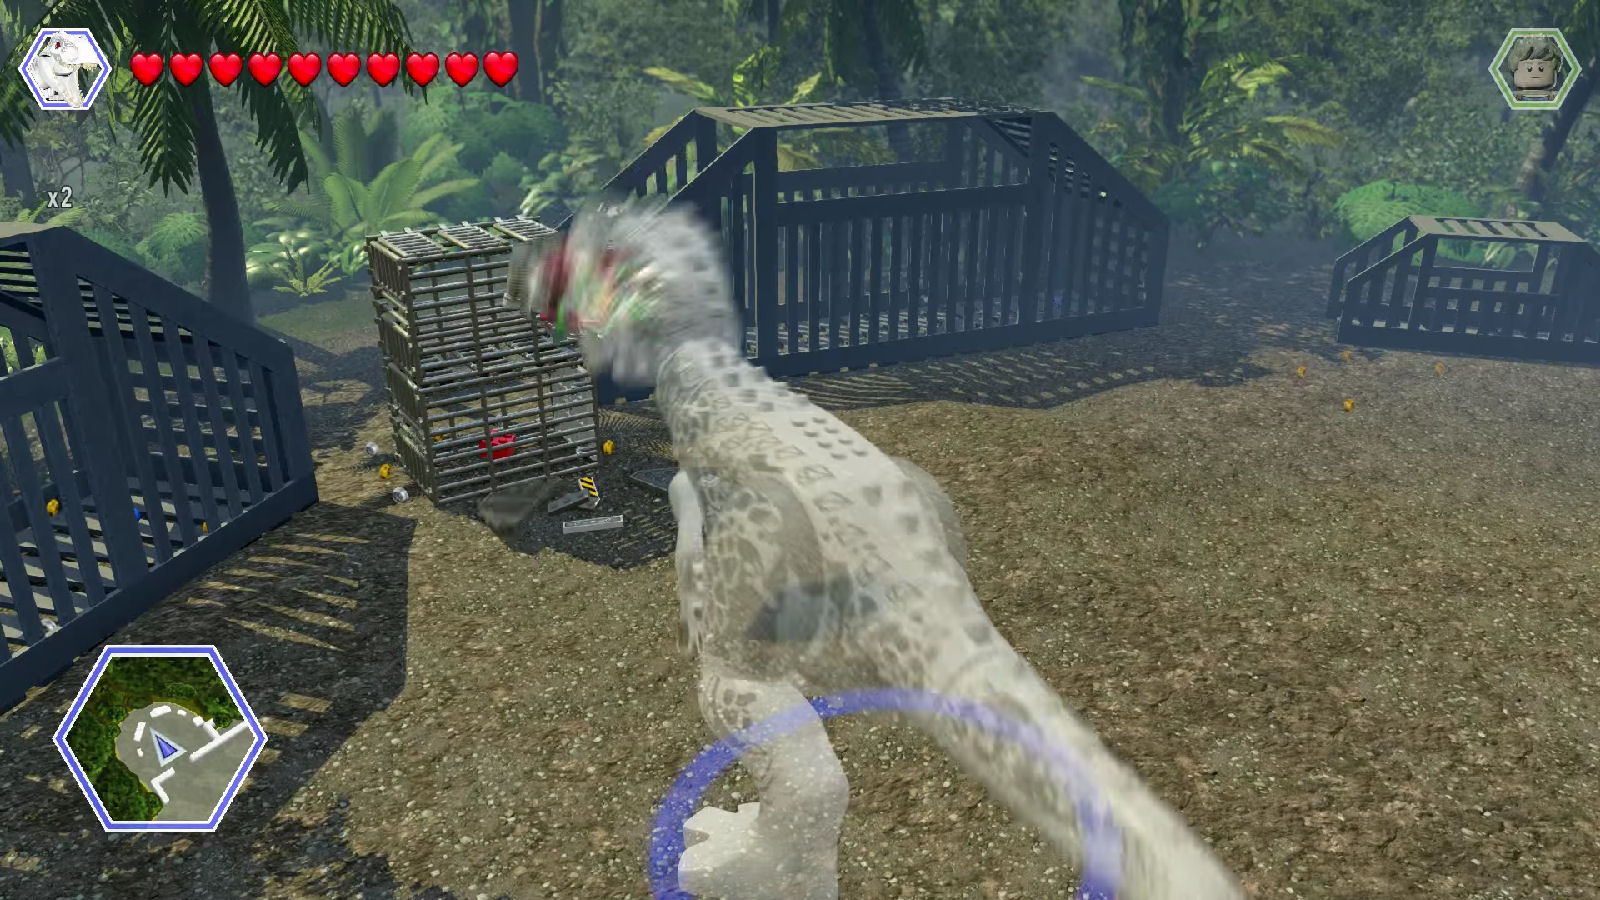 Lego Jurassic World Red Brick 5: Studs x10 Location